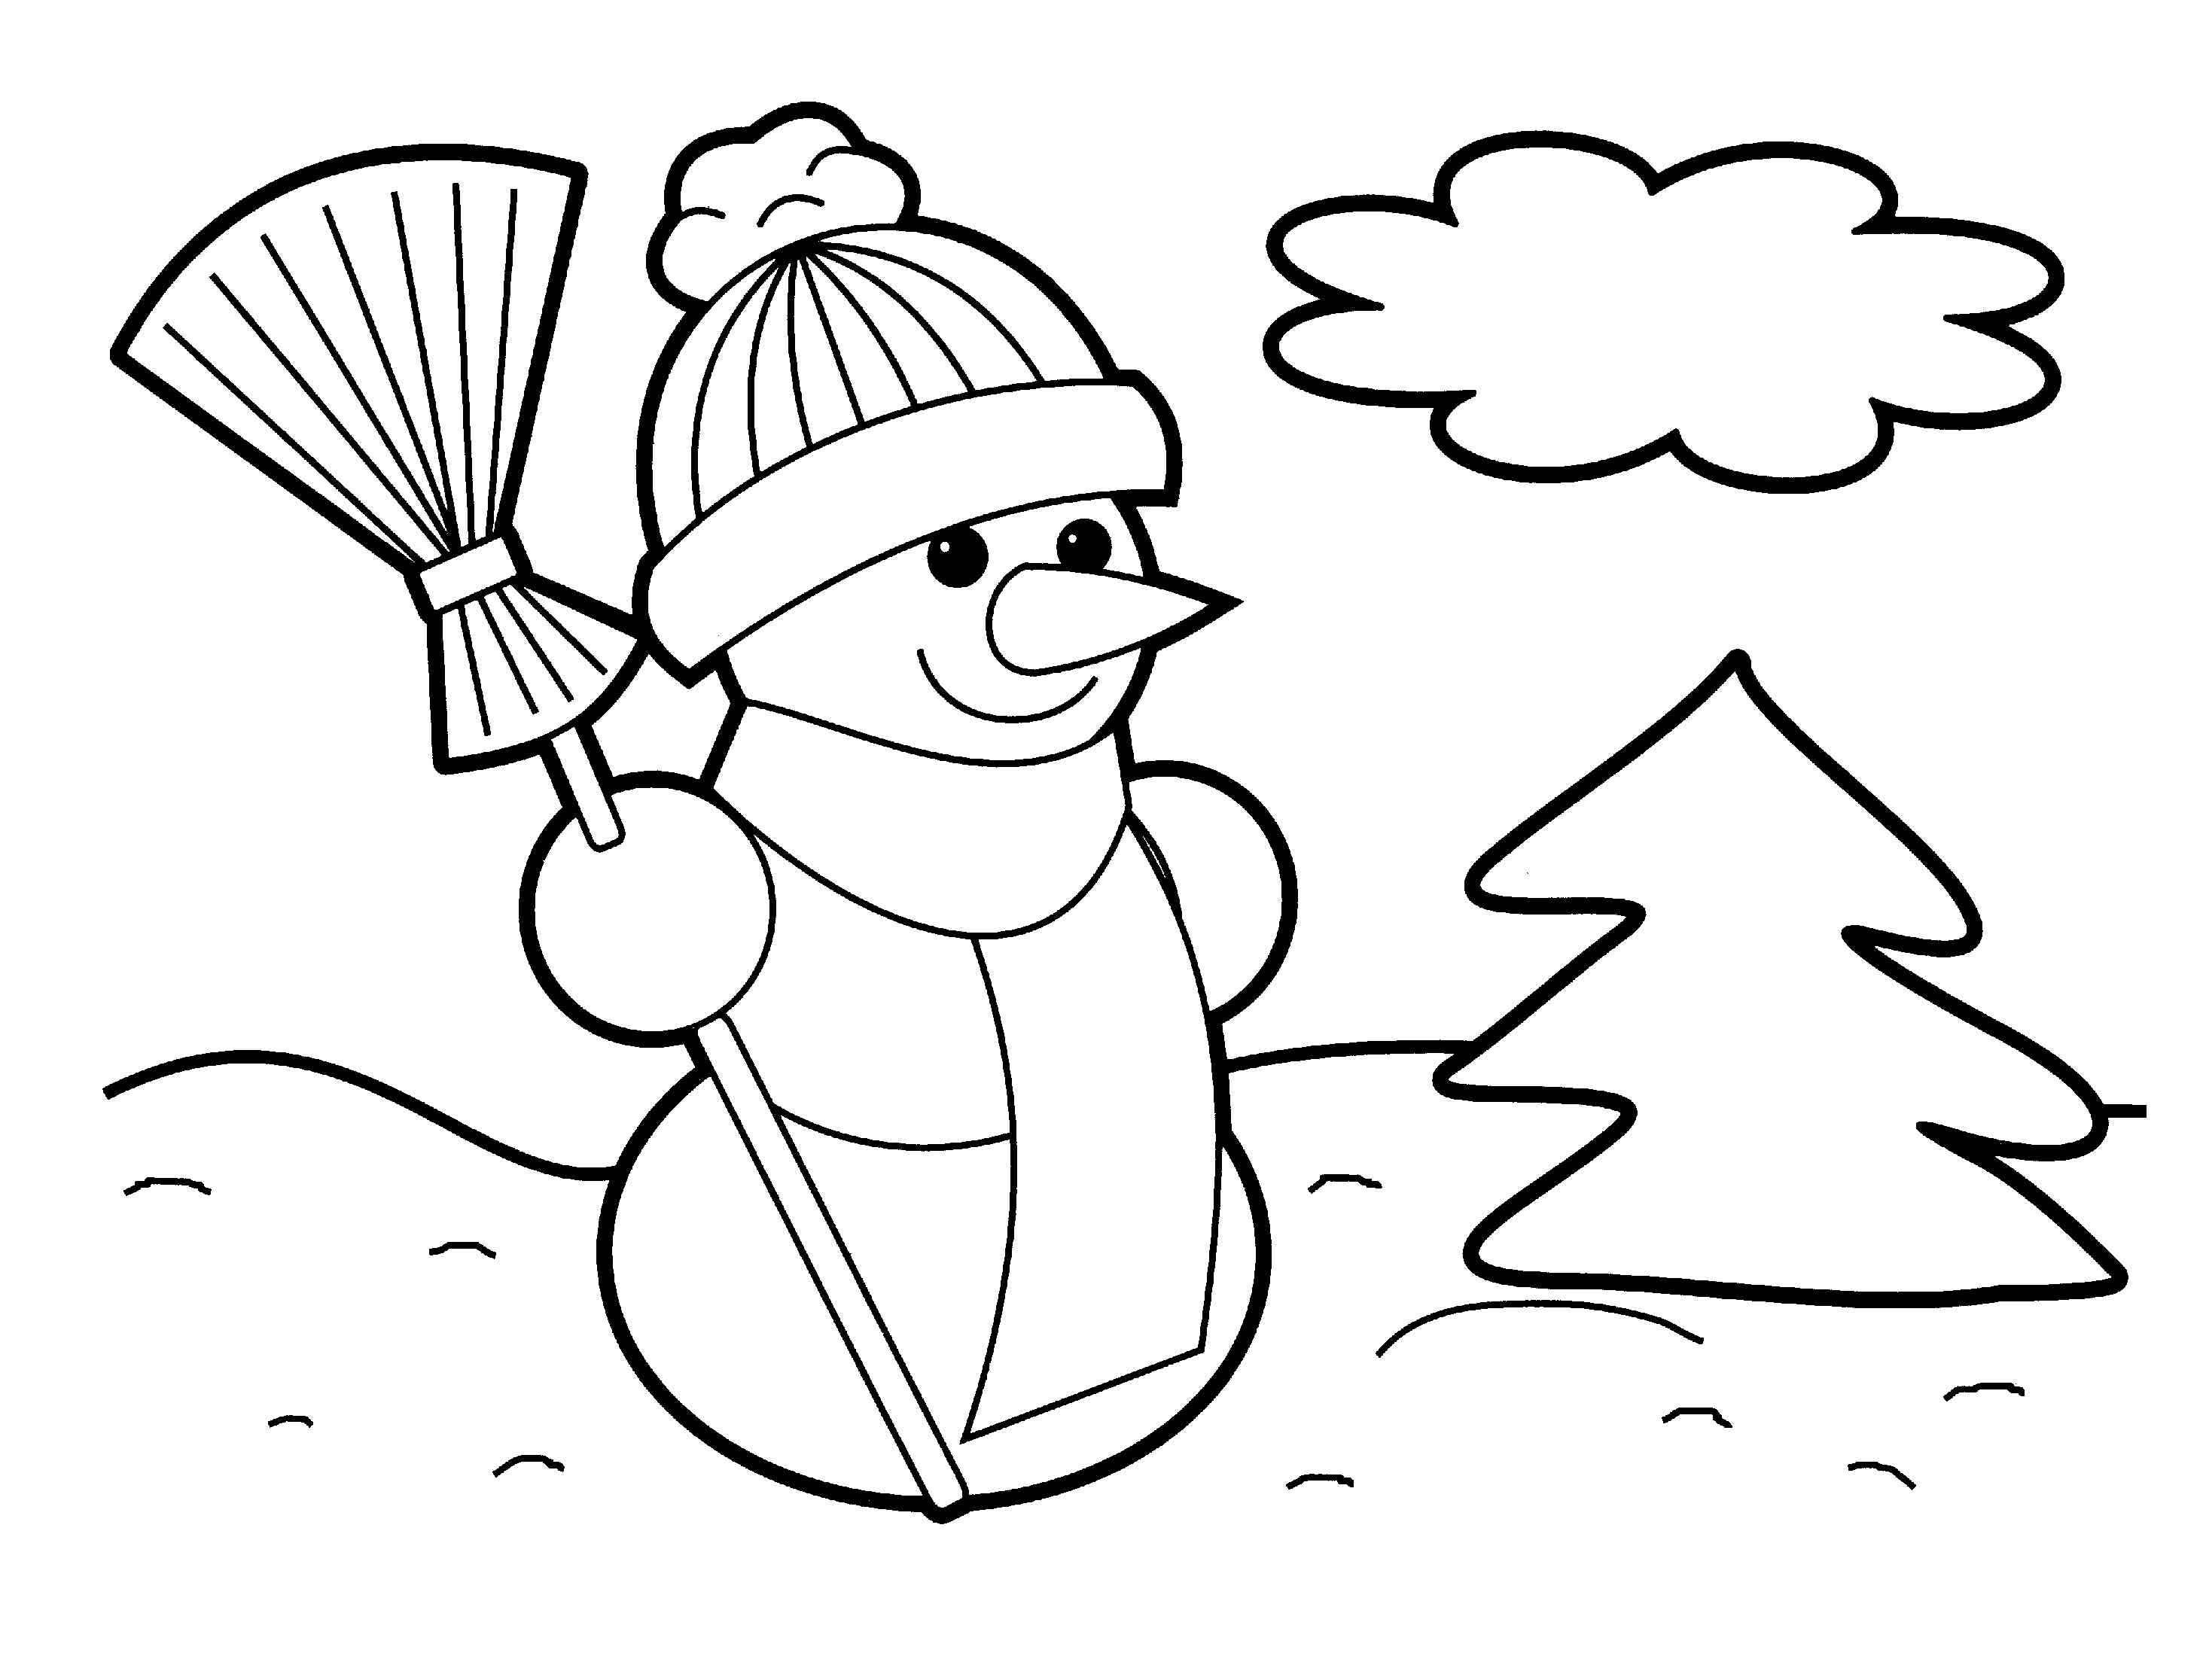 Santa Suit Coloring Page Getcoloringpages With Christmas Snowman Pages Download Free Books